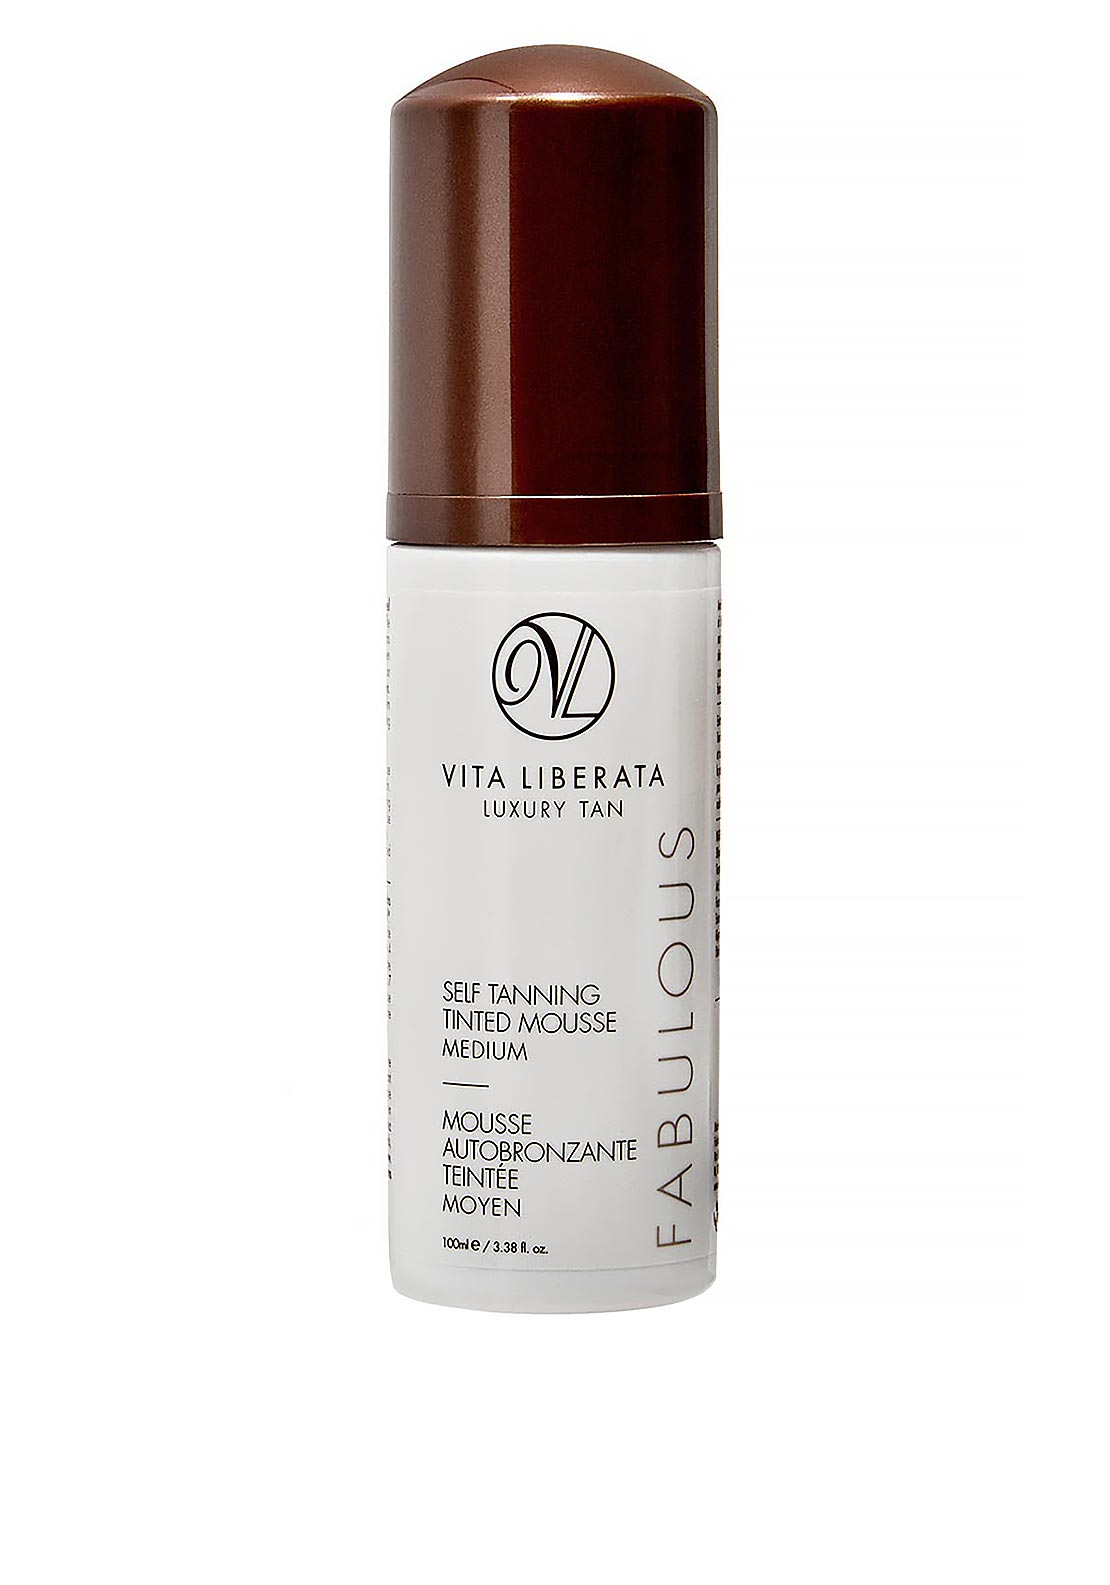 Vita Liberata Fabulous Self-Tanning Medium Mousse